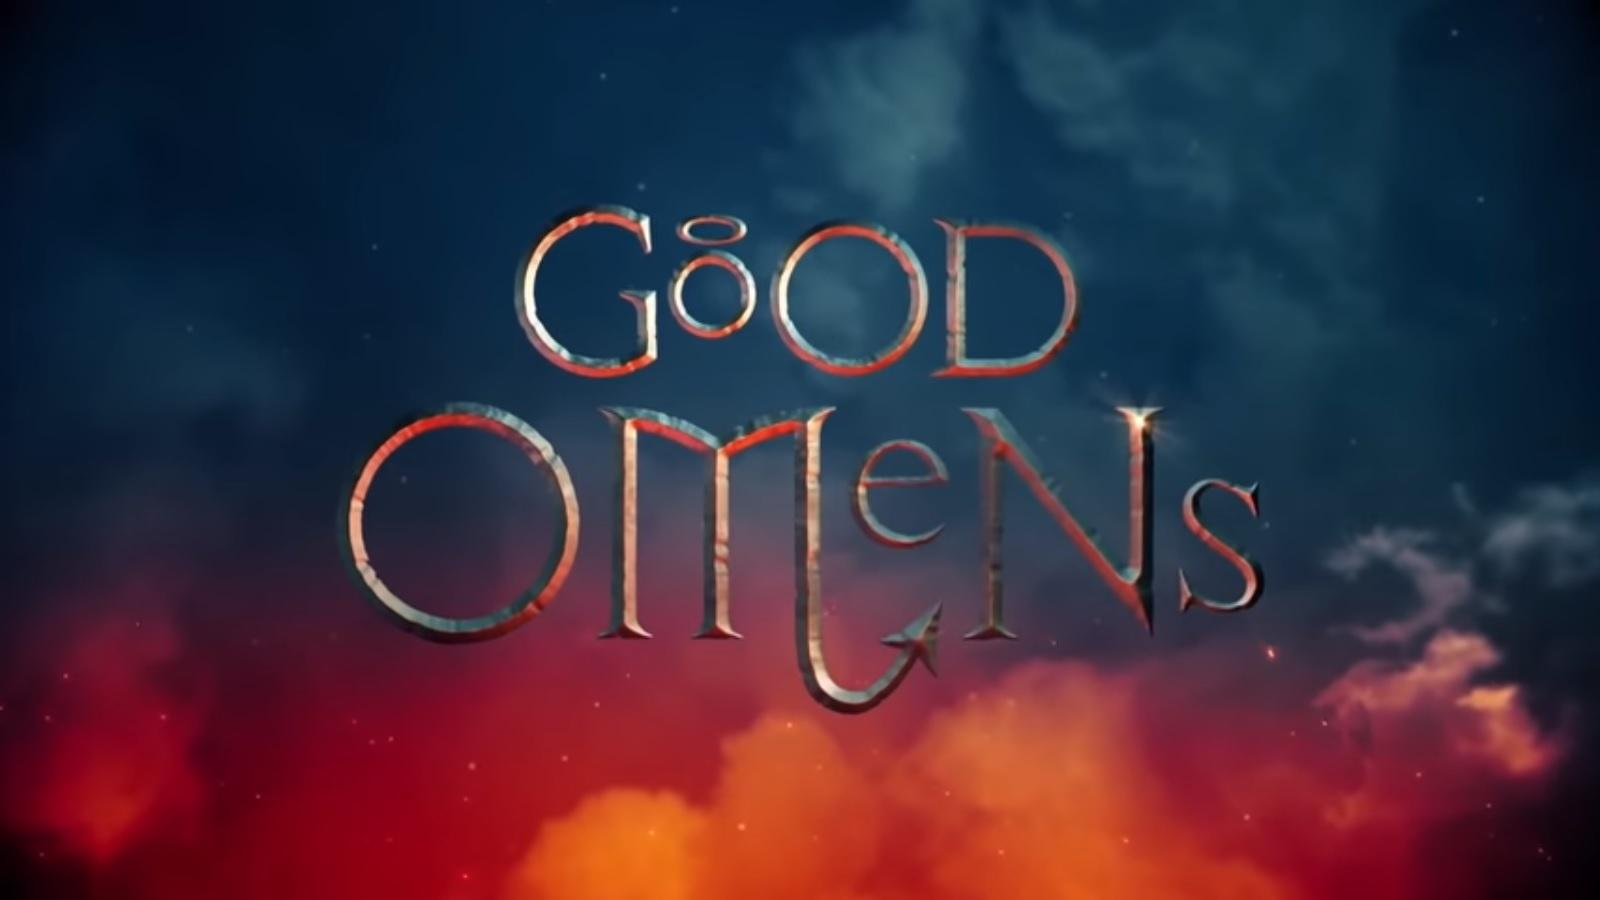 VÍDEO: Tráiler de Good Omens, adaptación del libro de Neil y Terry